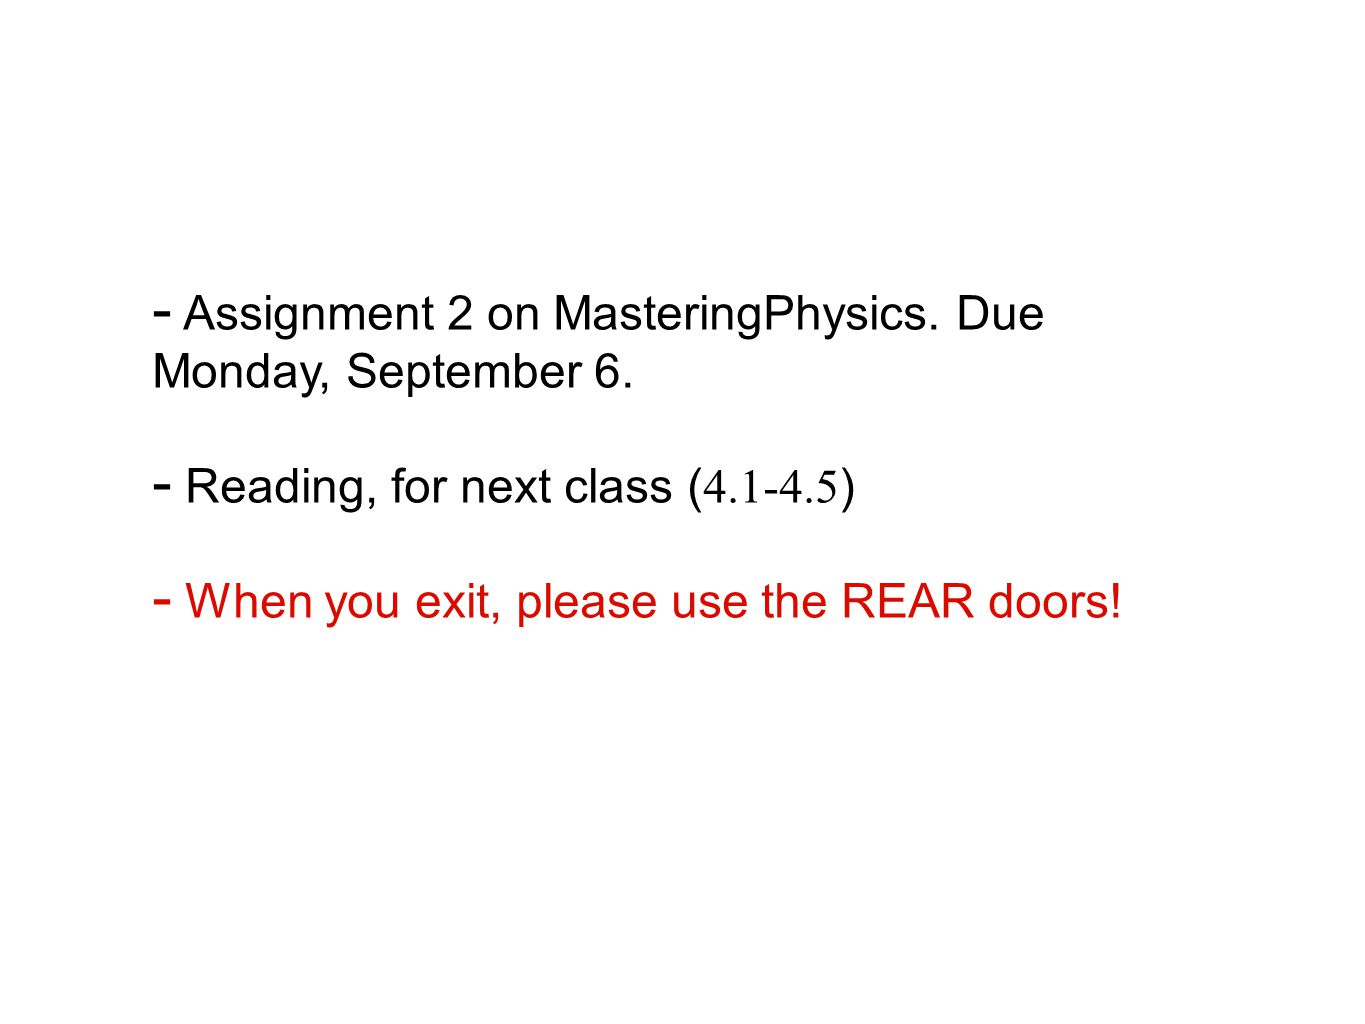 Assignment 2 on MasteringPhysics. Due Monday, September 6.